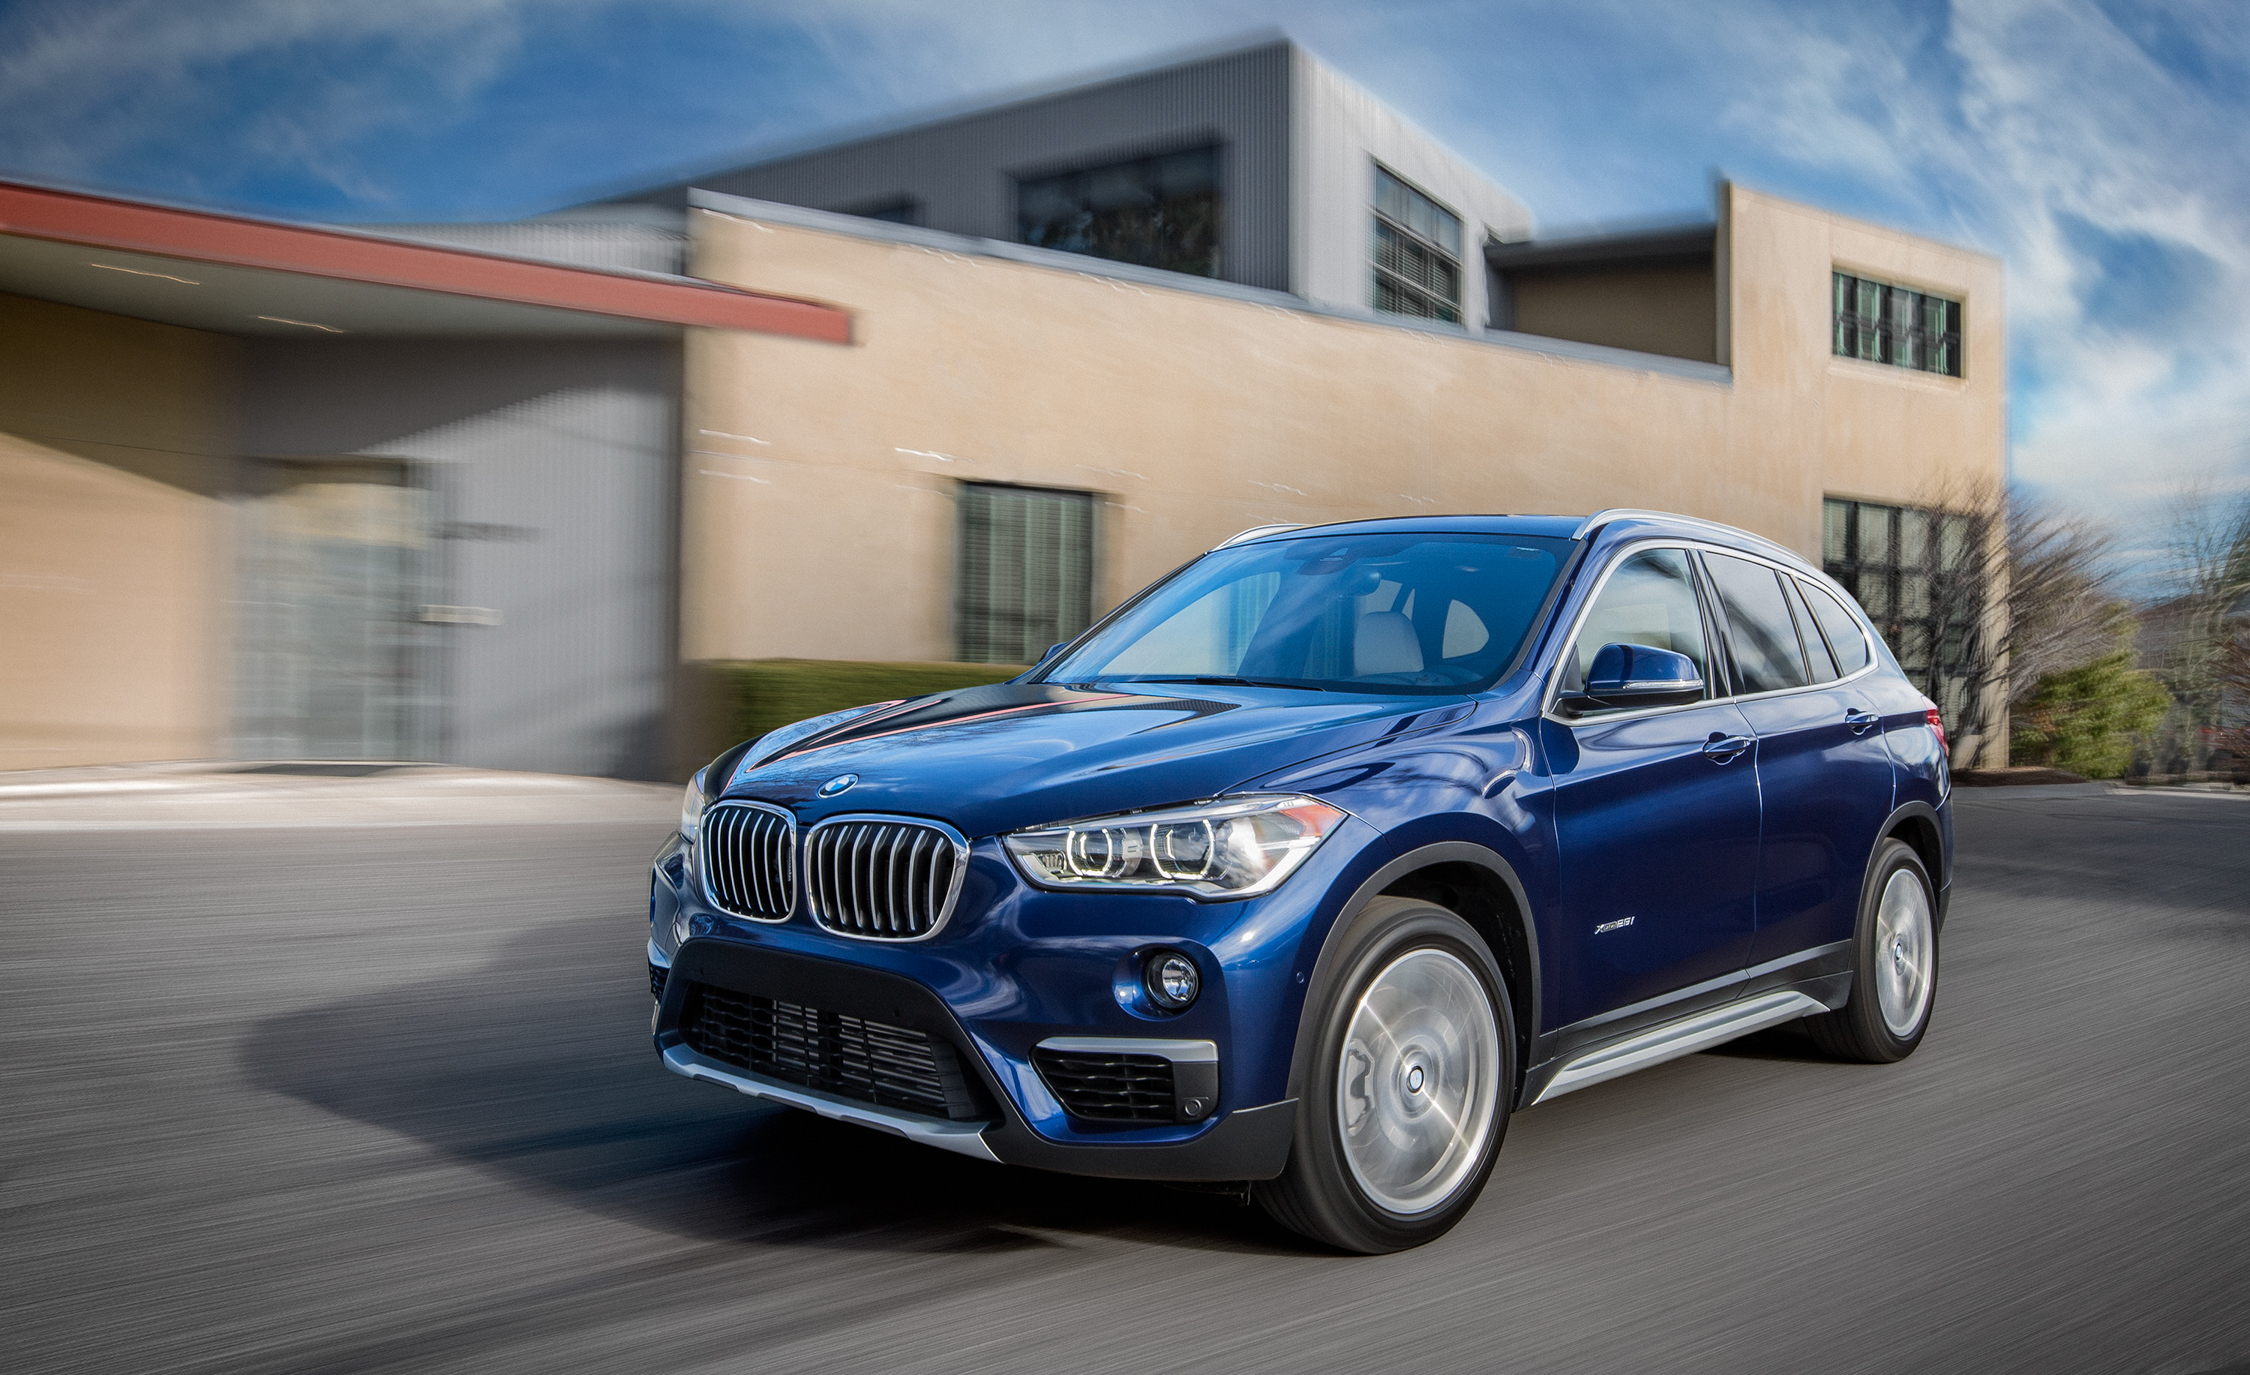 2016 BMW X1 XDrive28i Blue Metallic (View 1 of 36)